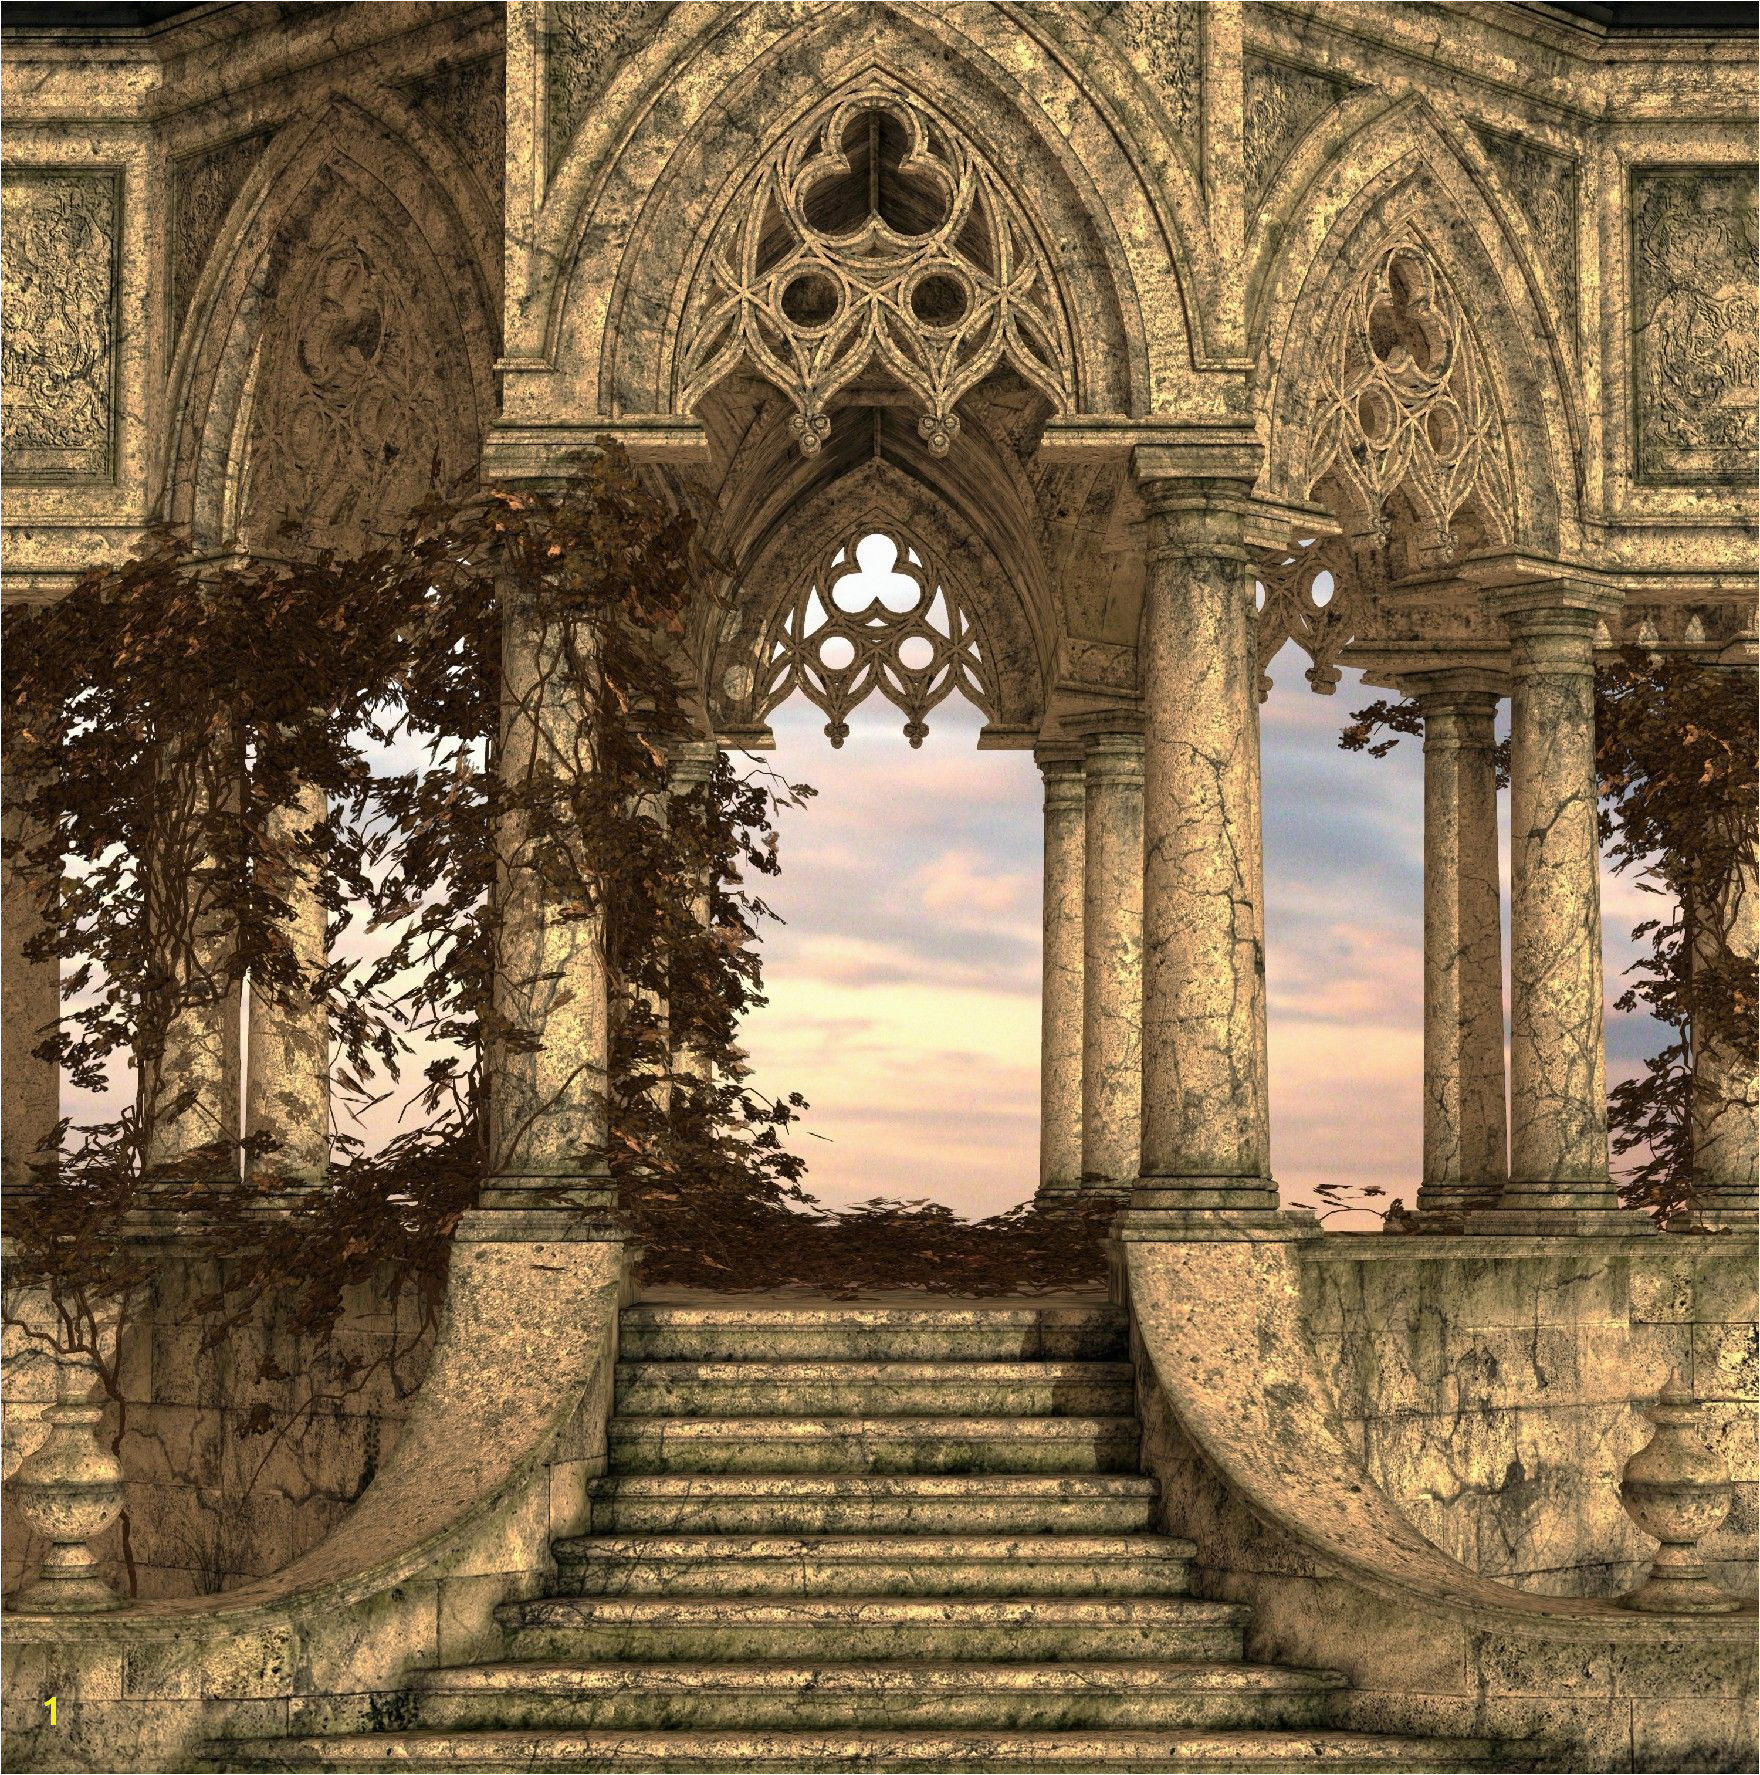 Ancient Stairs Wall Mural Architecture Old World Exquisitely strong stone stairs leading to a view of which we only a small glimpse